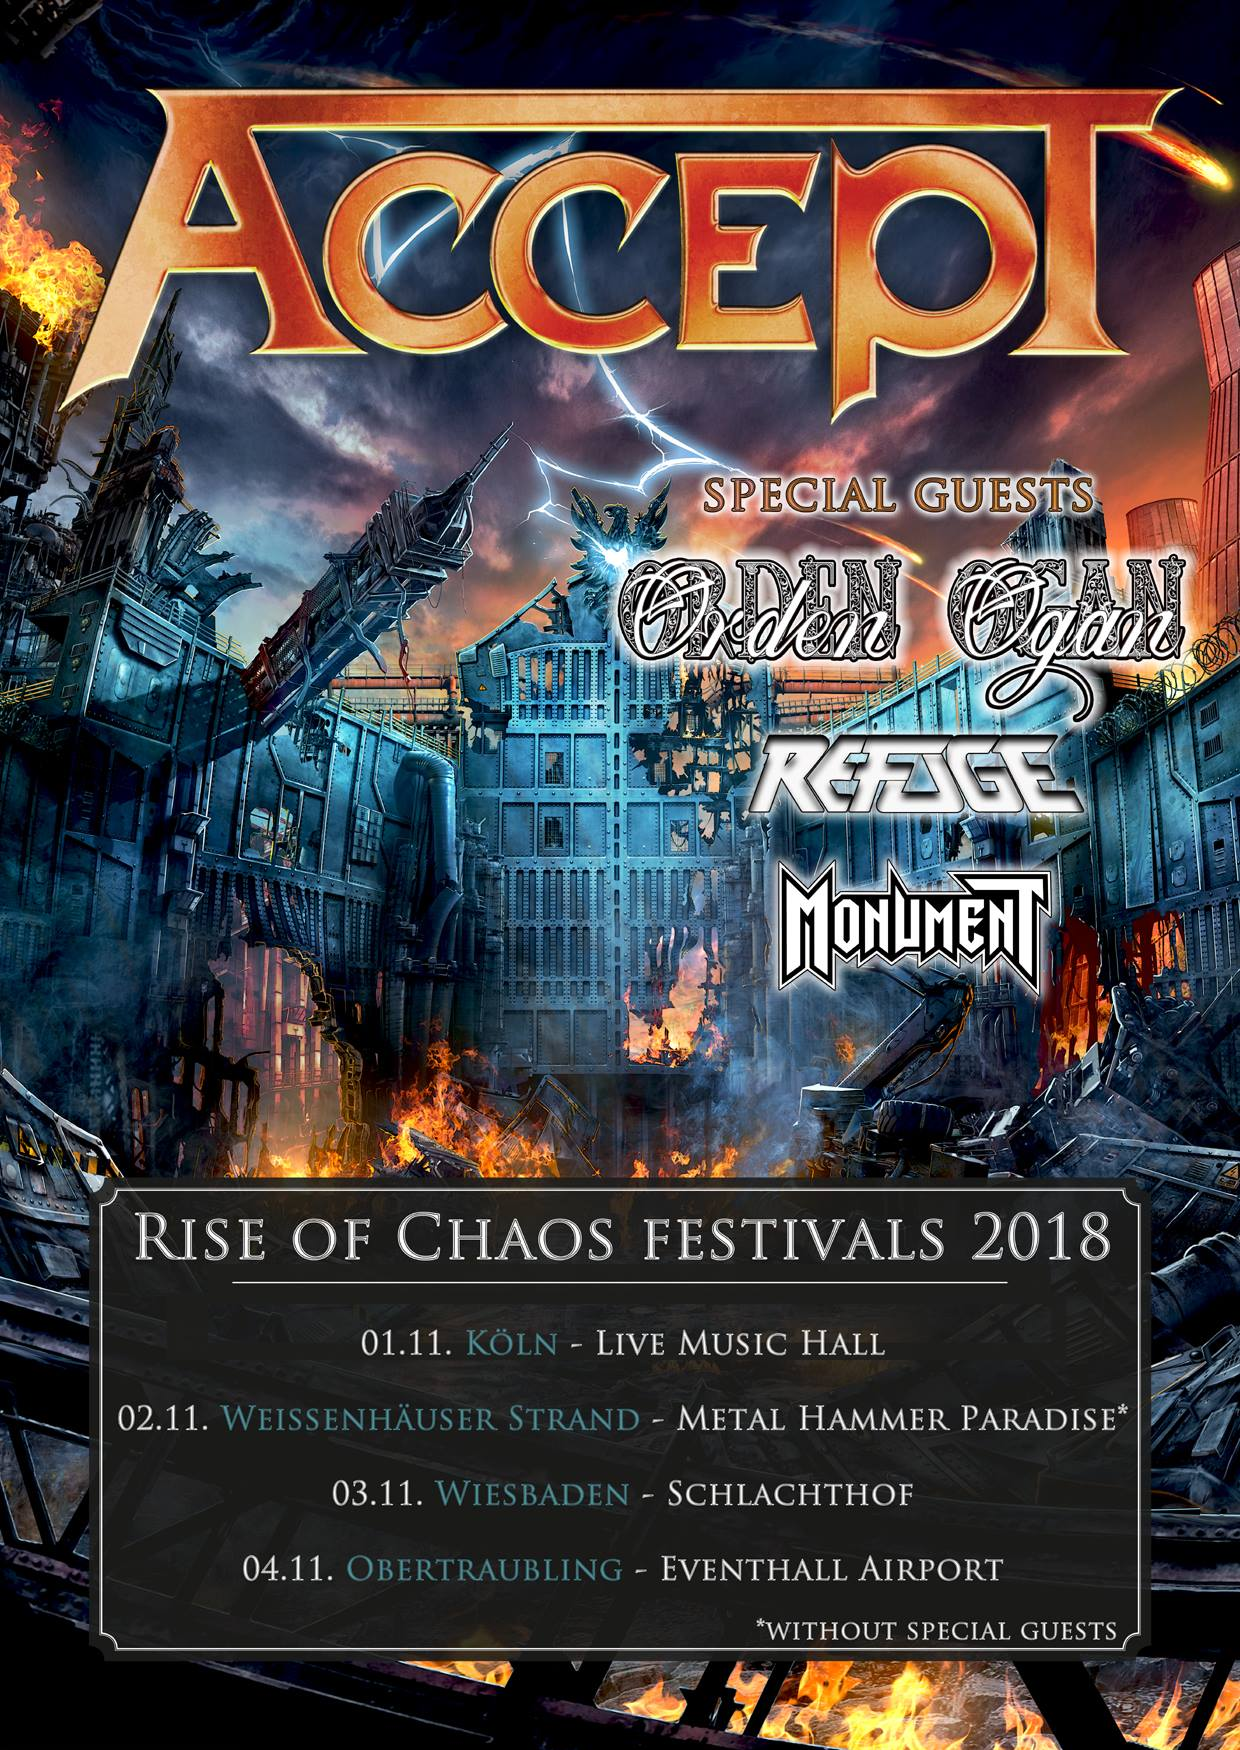 Accept - Rise of Chaos Festivals 2018